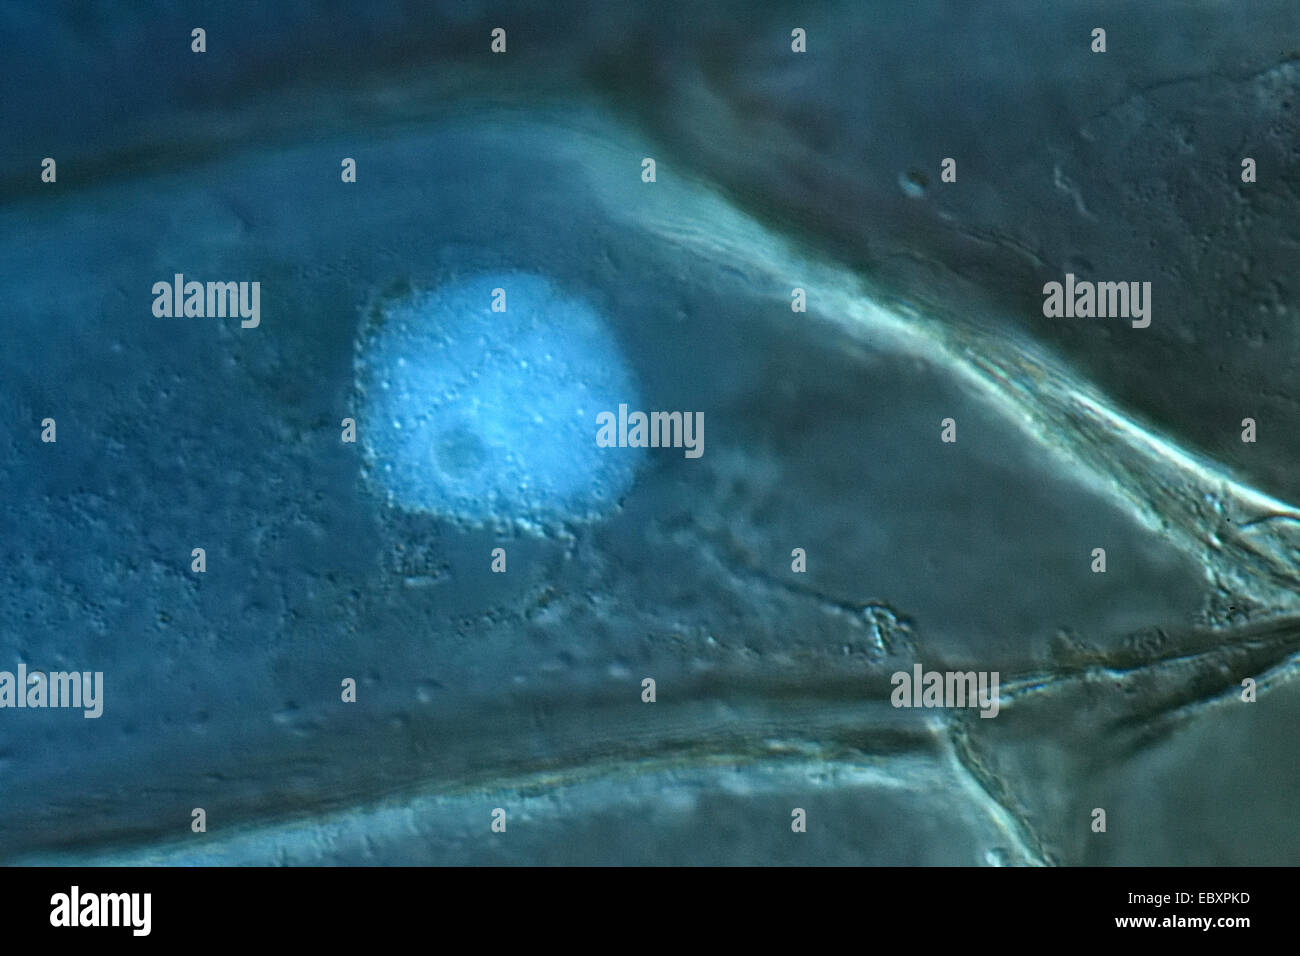 Cell wall, nucleus, and organelles of onion bulb scale epidermis cells - Stock Image